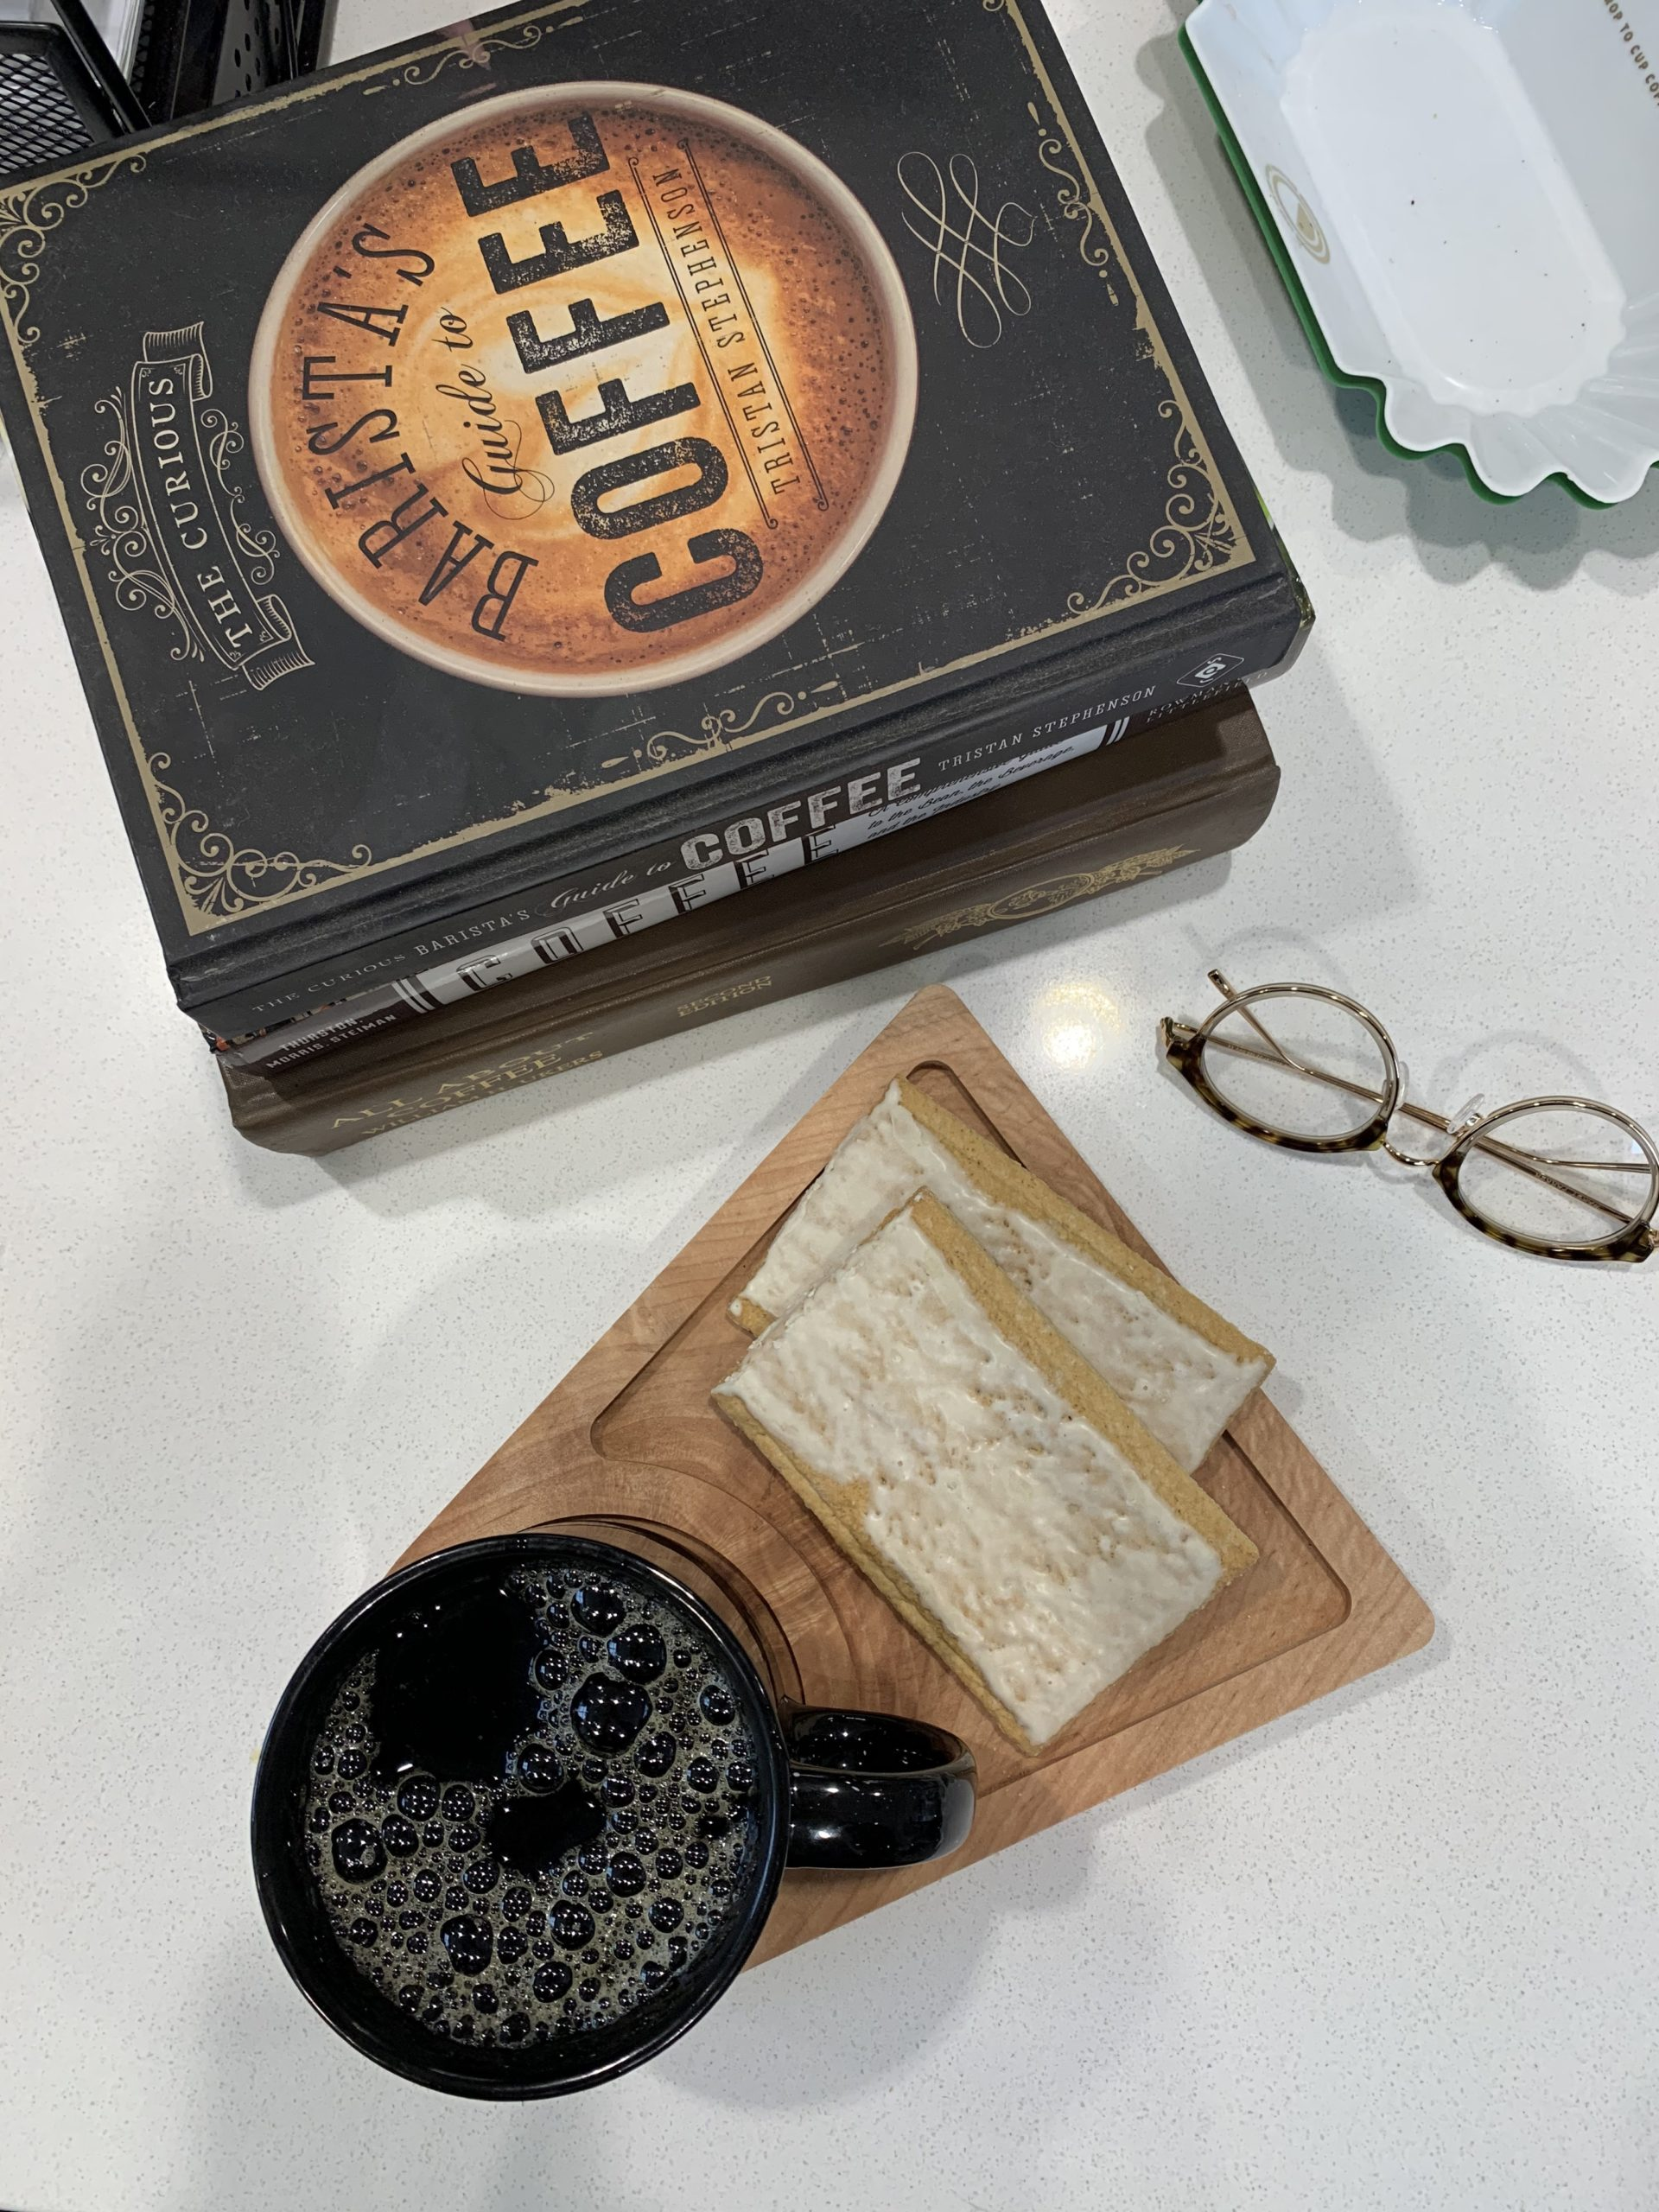 Crafted Wood Coffee and Breakfast Board